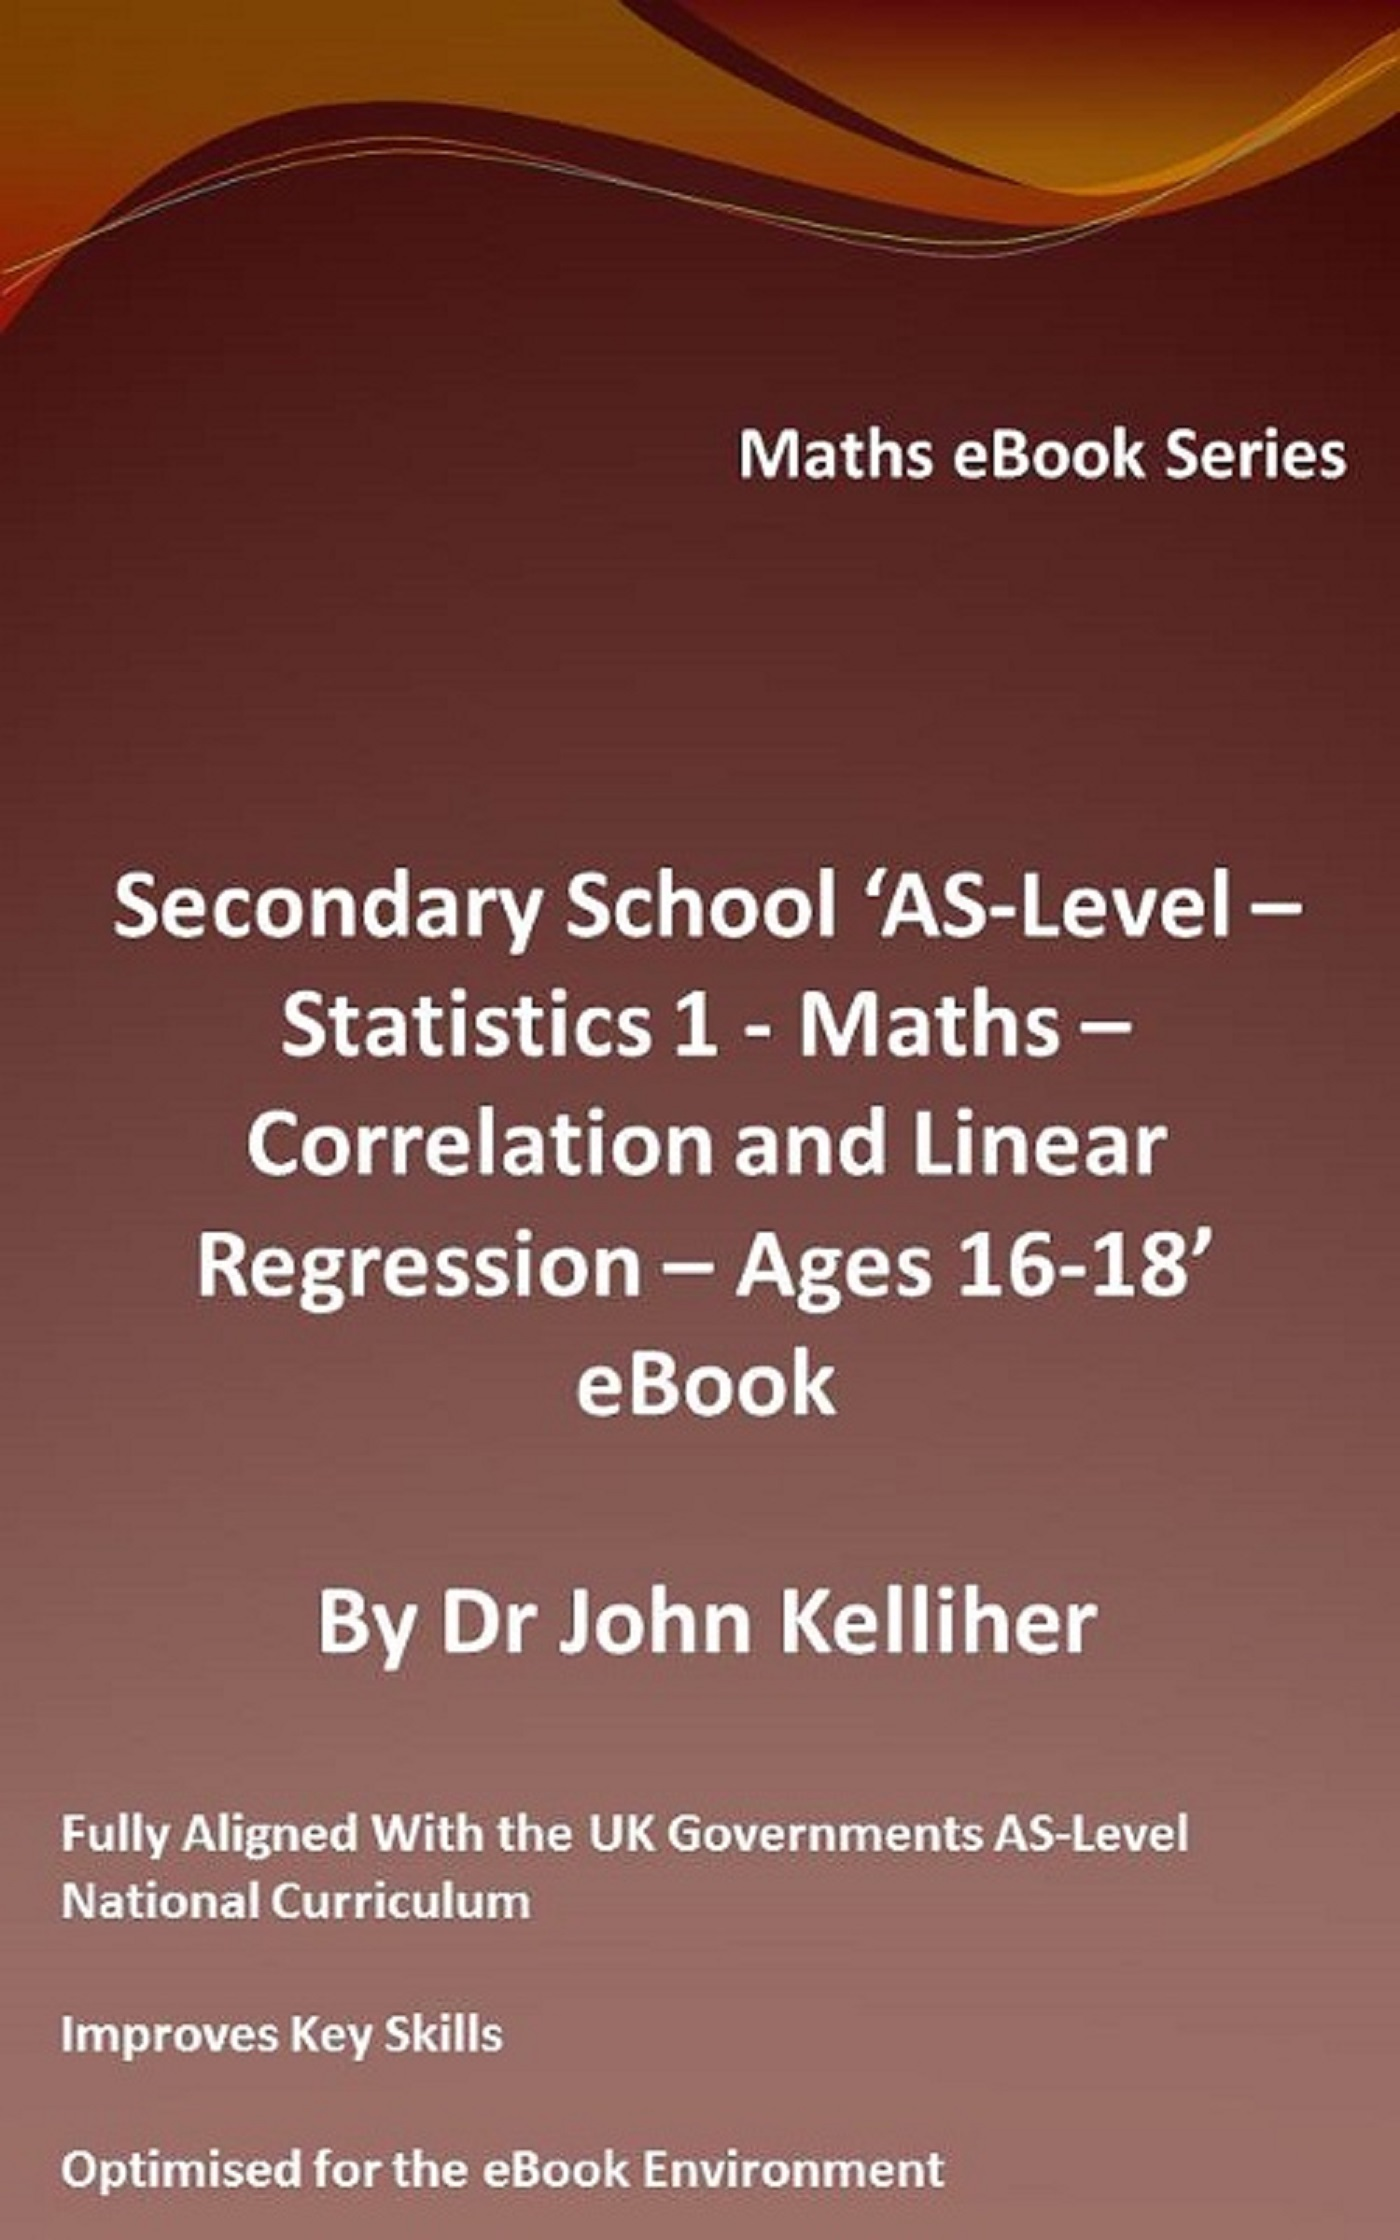 Secondary School AS-Level: Statistics 1 - Maths - Correlation and Linear Regression - Ages 16-18 - eBook